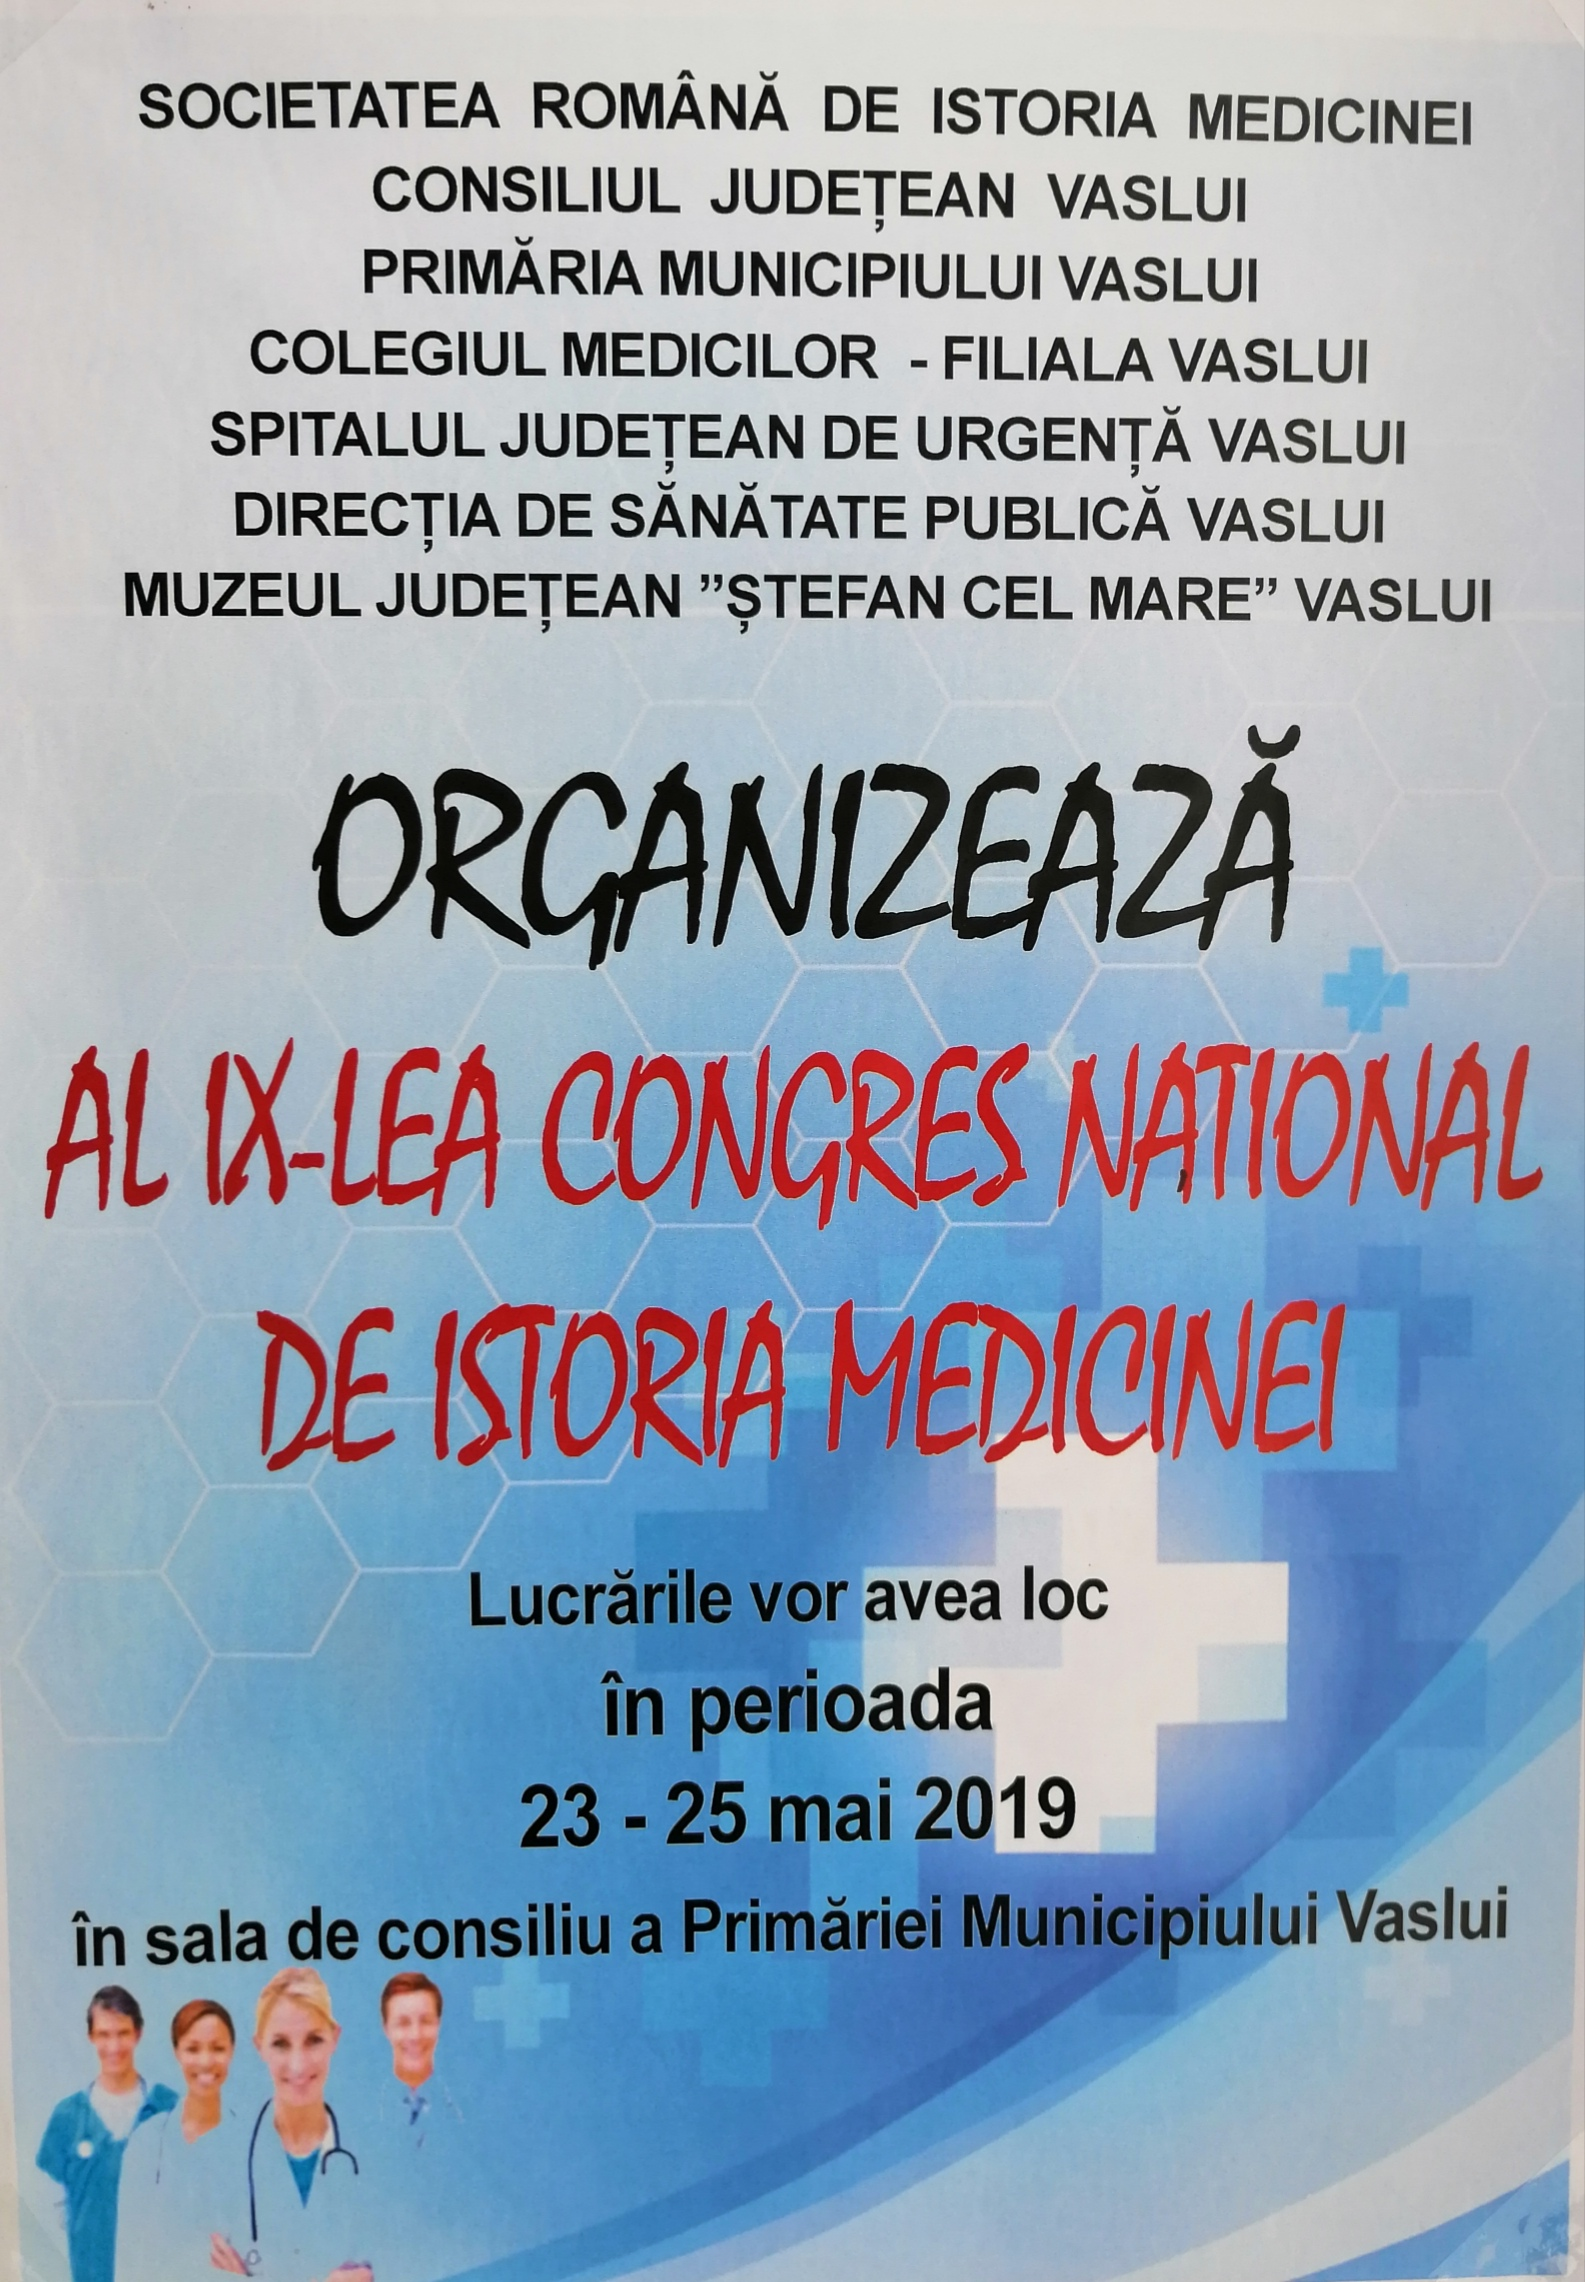 Congresul National de Istoria Medicinei 23-25 Mai 2019